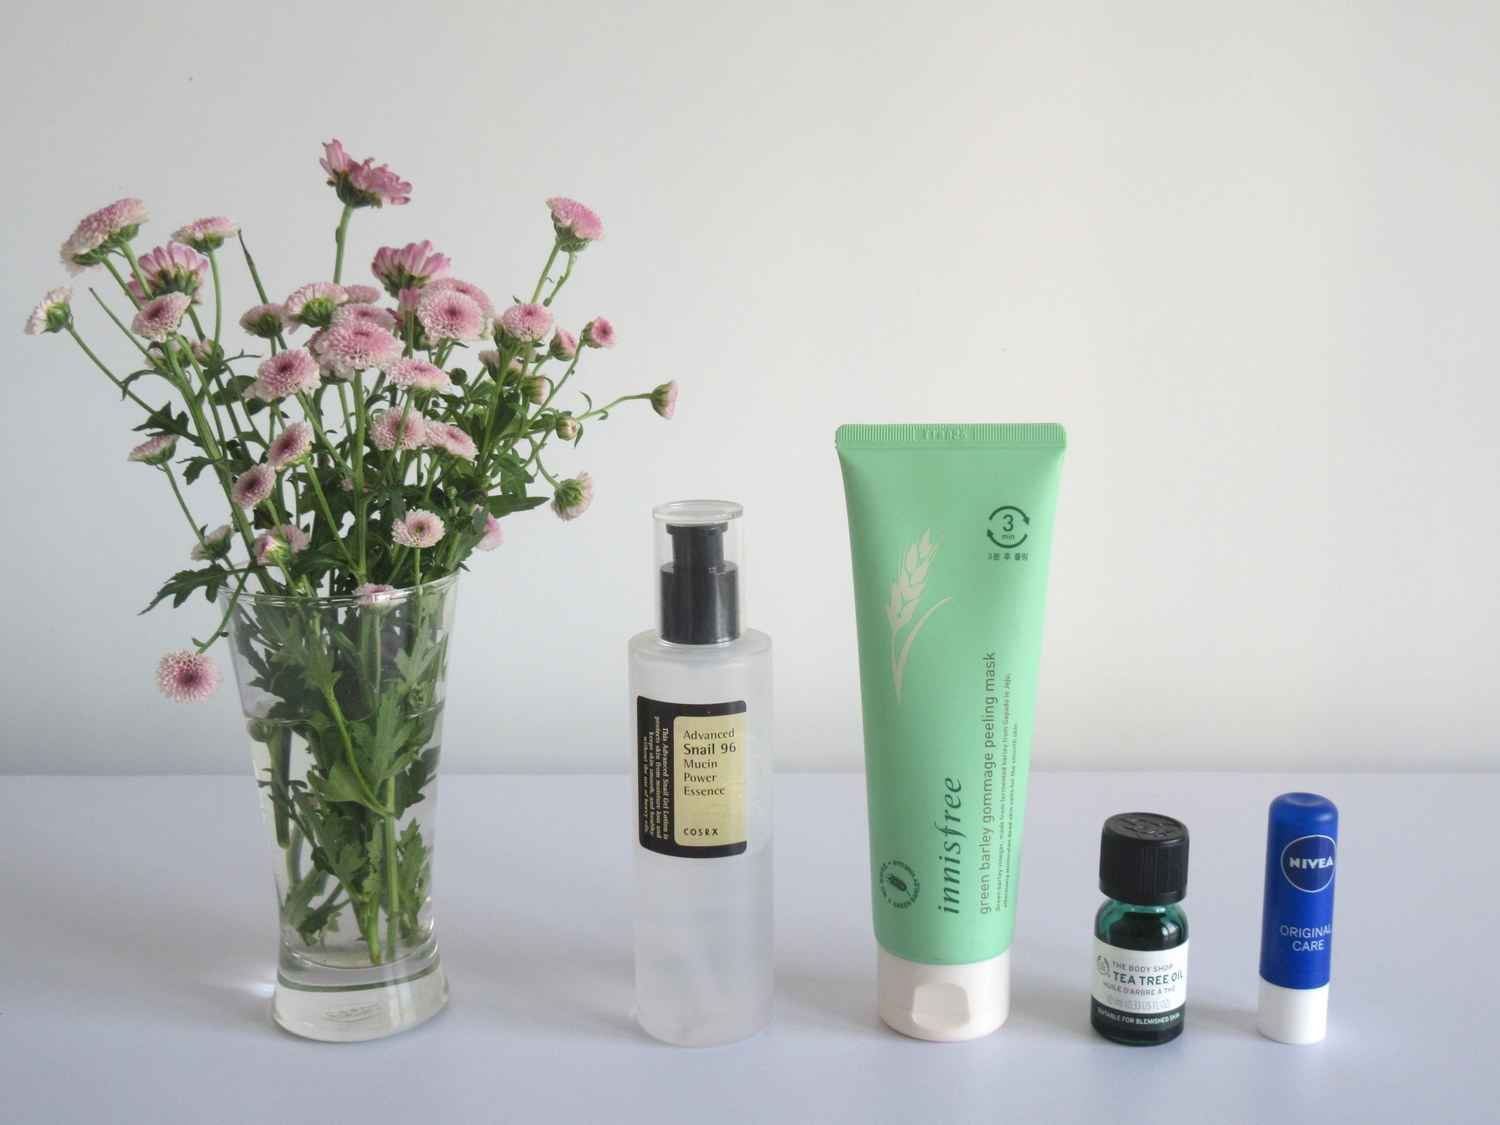 COSRX Advanced Snail 96 Mucin Power Essence, Innisfree Green Barley Gommage Peeling Mask, COSRX Low pH Good Morning Gel Cleanser, The Body Shop's Tea Tree Oil, Nivea's Original Care Lip Balm